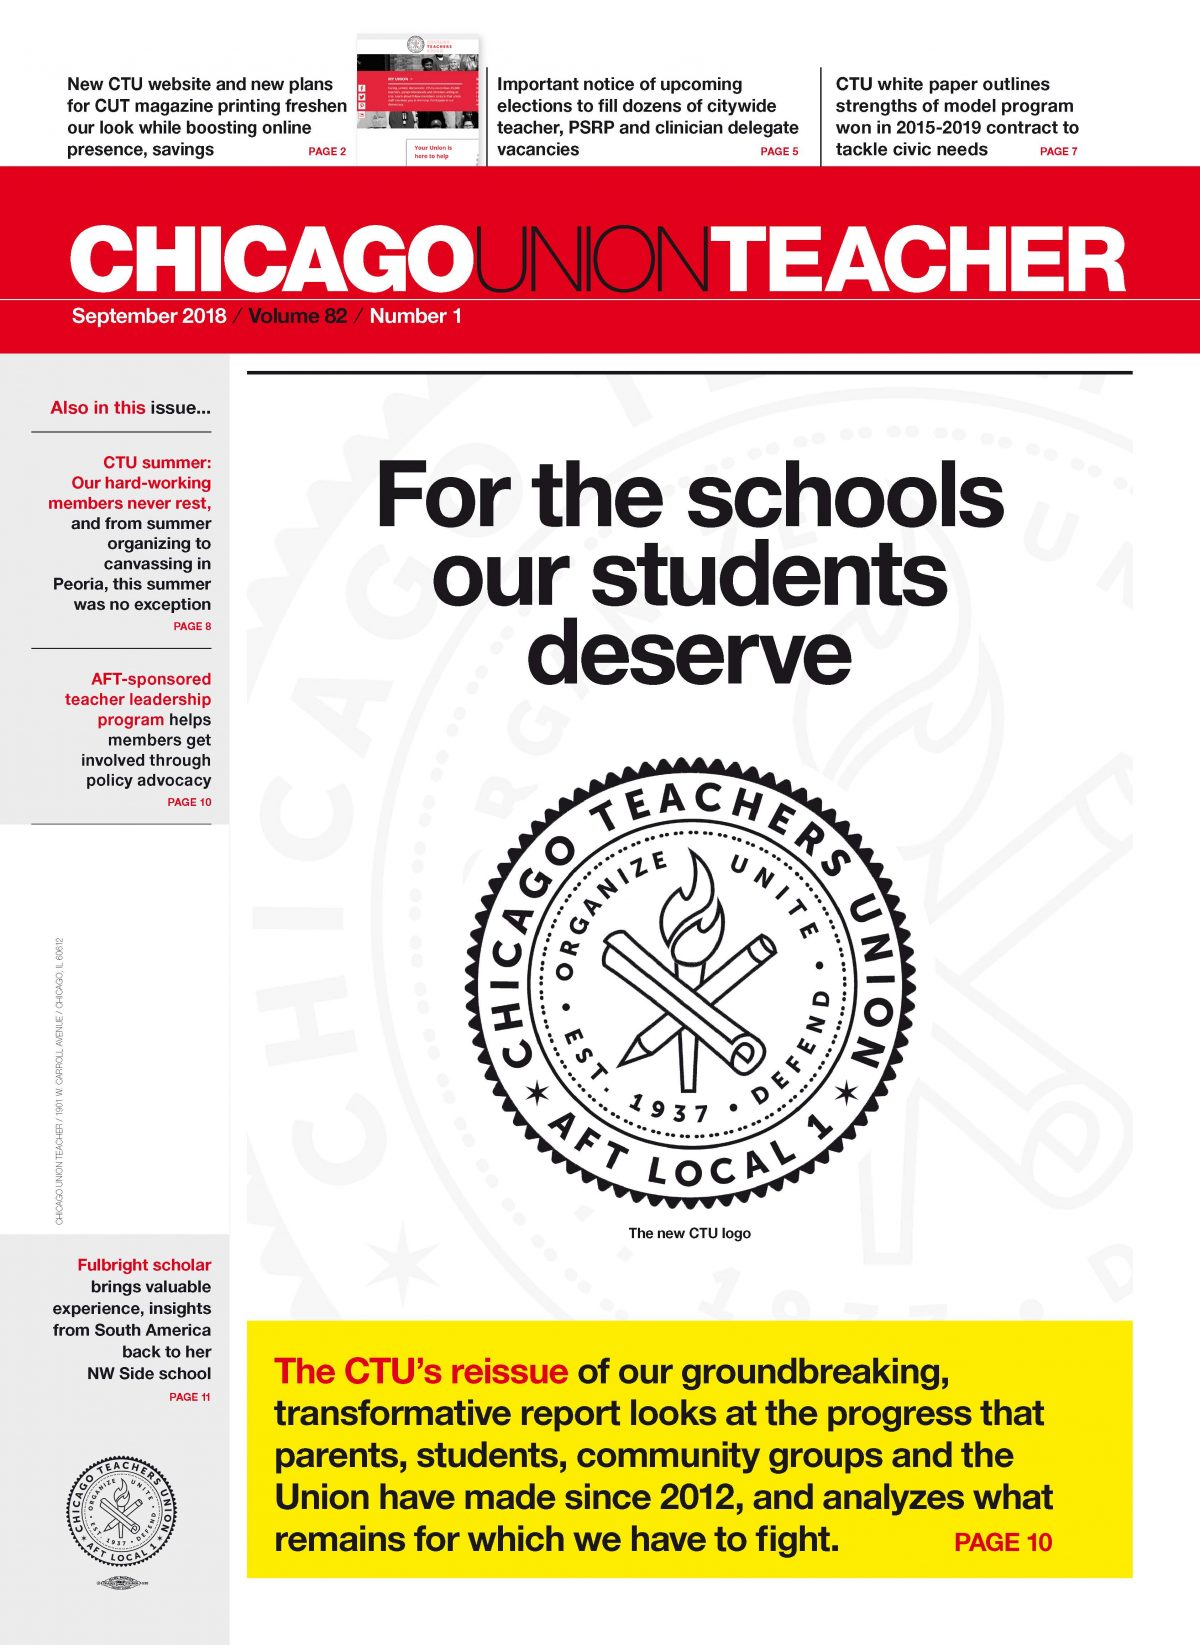 News from the Alliance of Charter Teachers and Staff